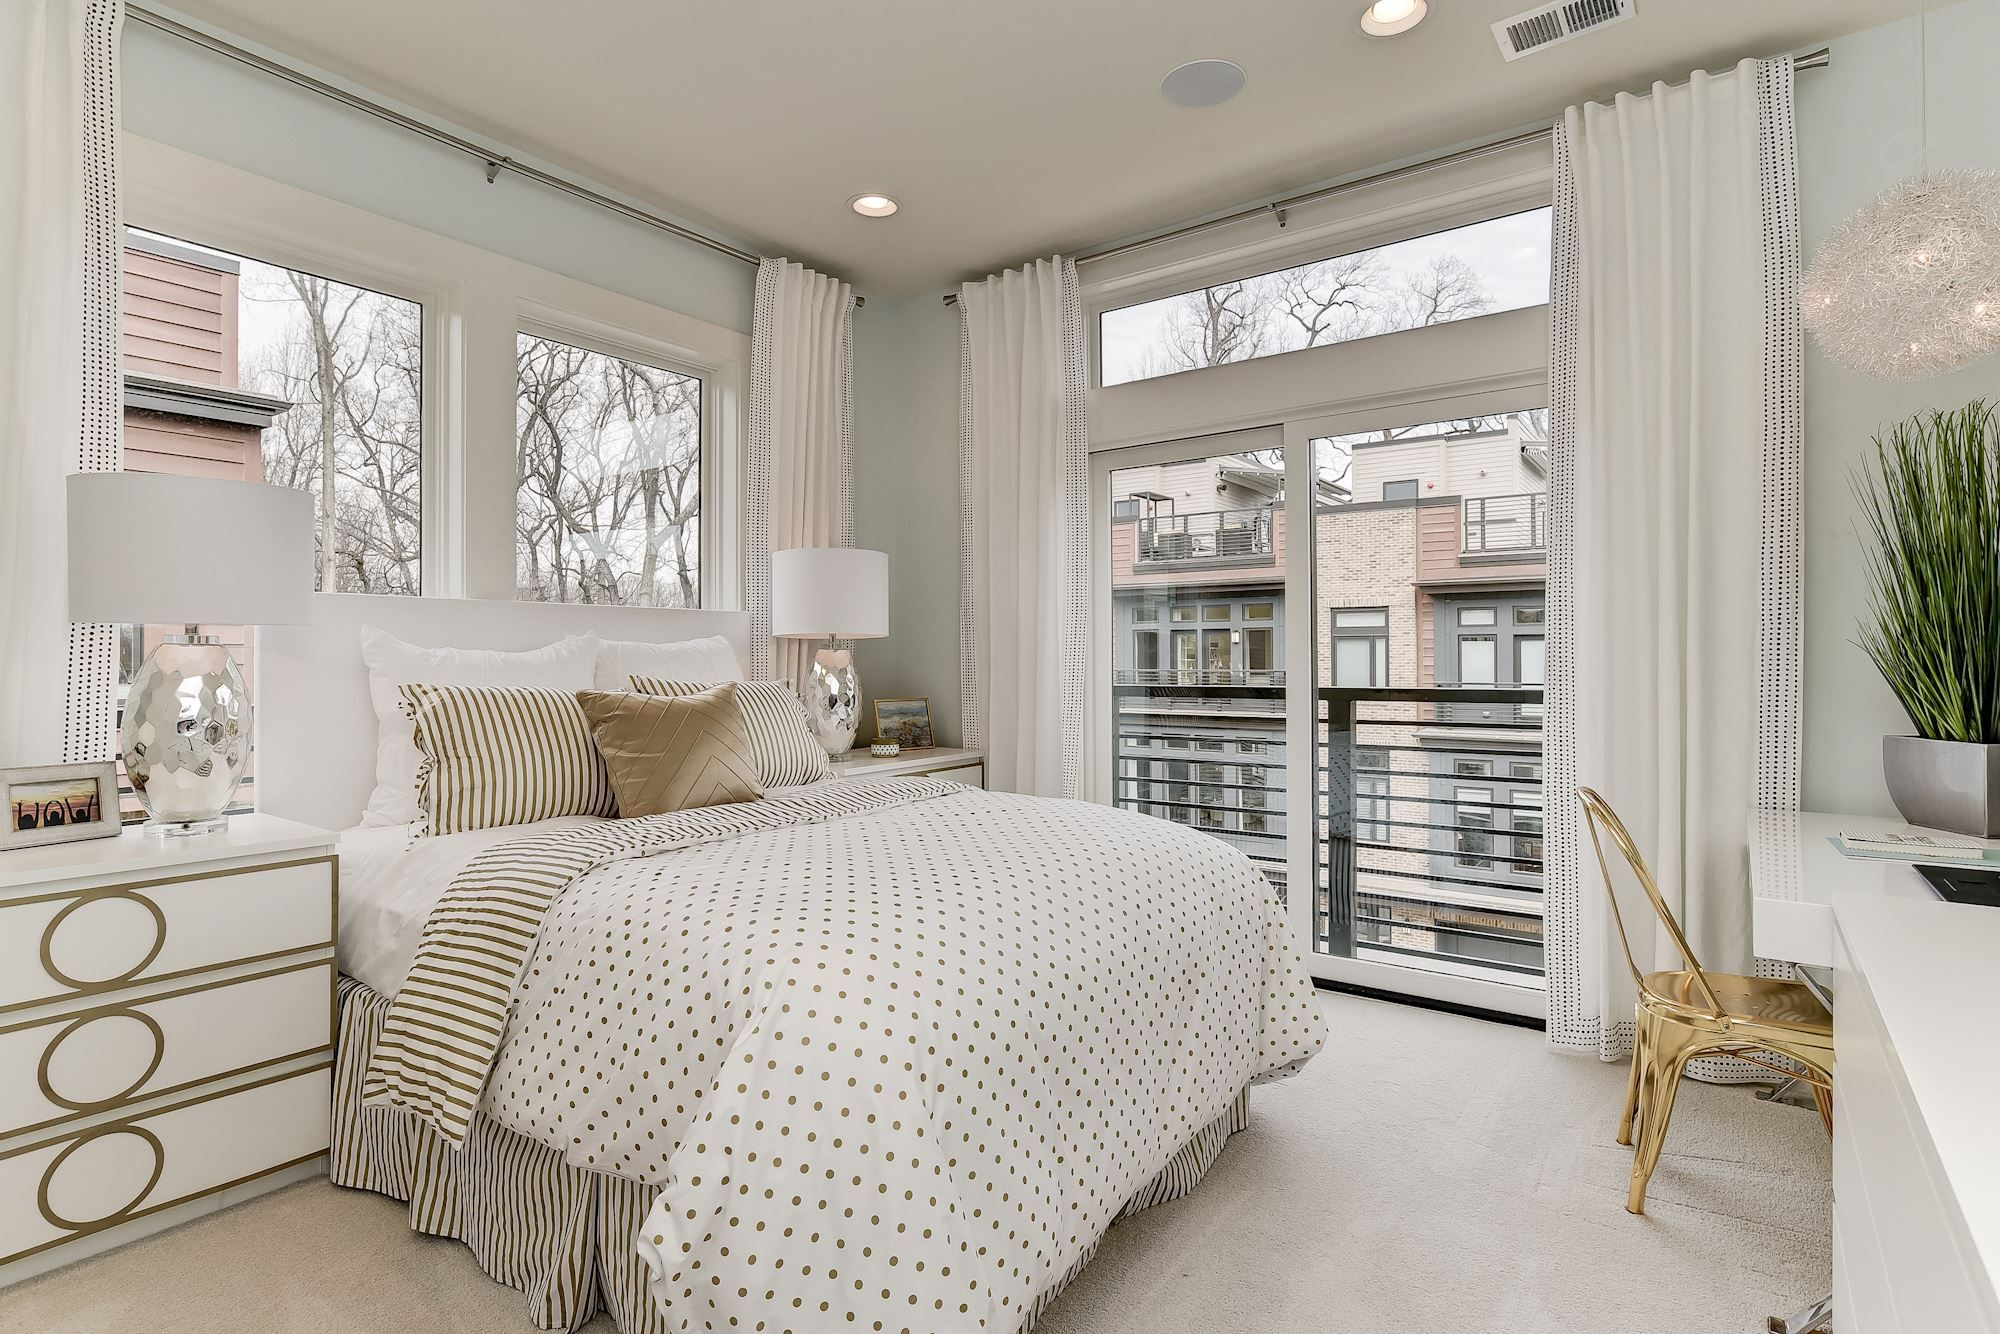 Bright Modern White Bedroom With Gold Accents In Eya S Cameron Model At Grosvenor Heights In Bethesda Md C White Bedroom Modern Living Room On A Budget Home